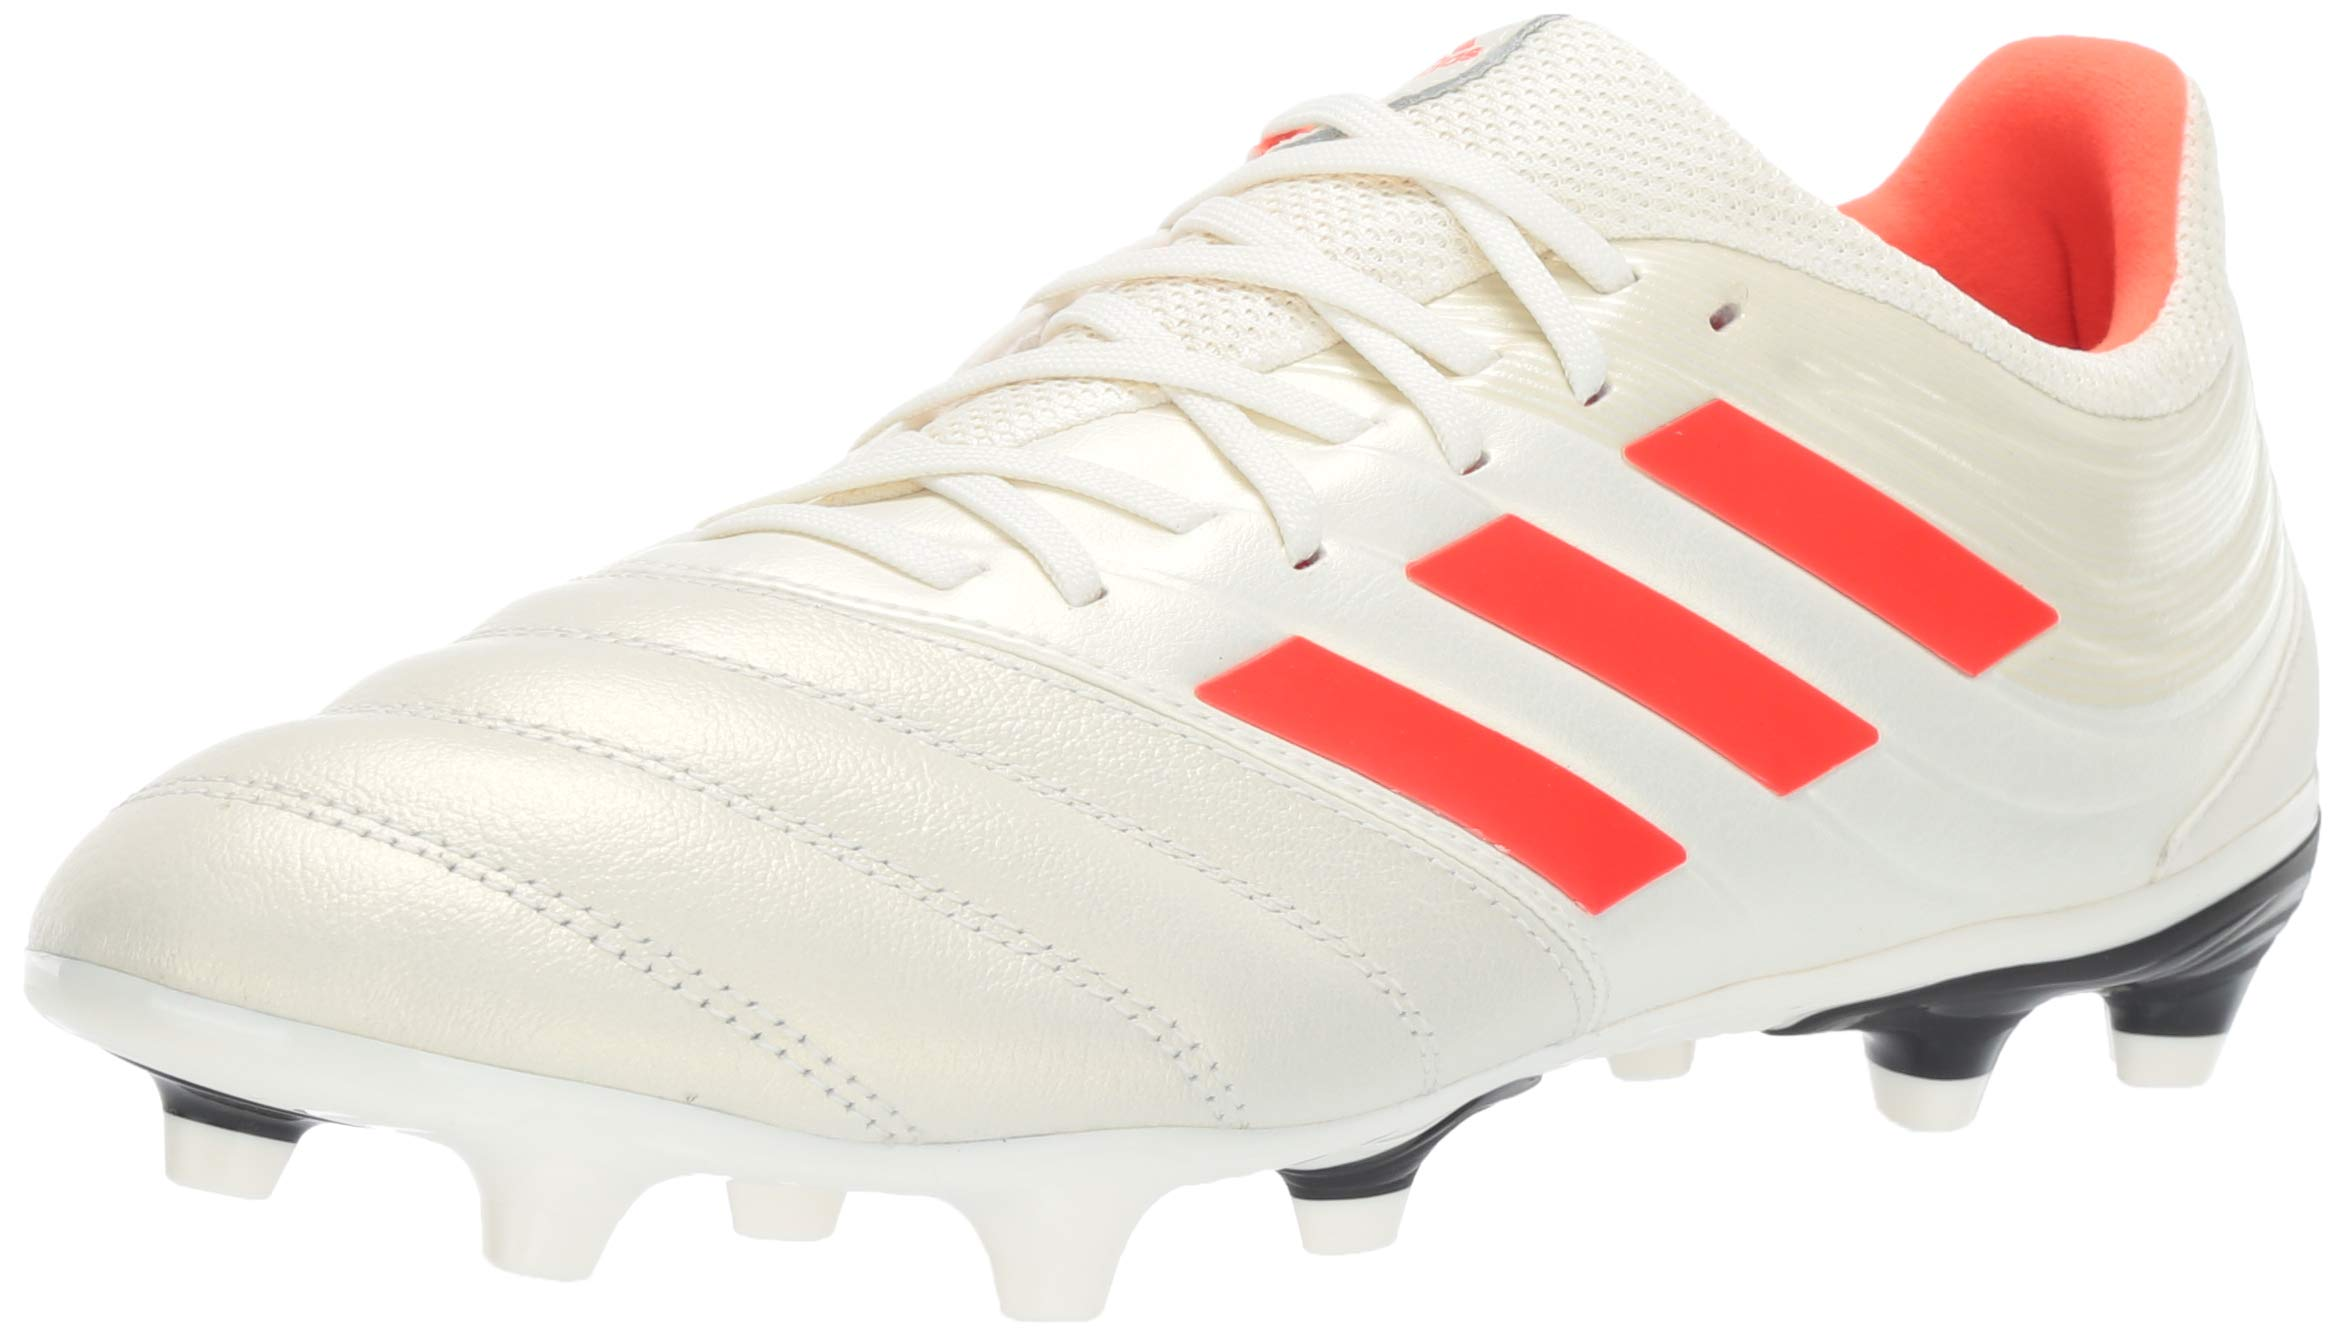 adidas Men's Copa 19.3 Firm Ground, Off Off White/Solar red/Black, 7 M US by adidas